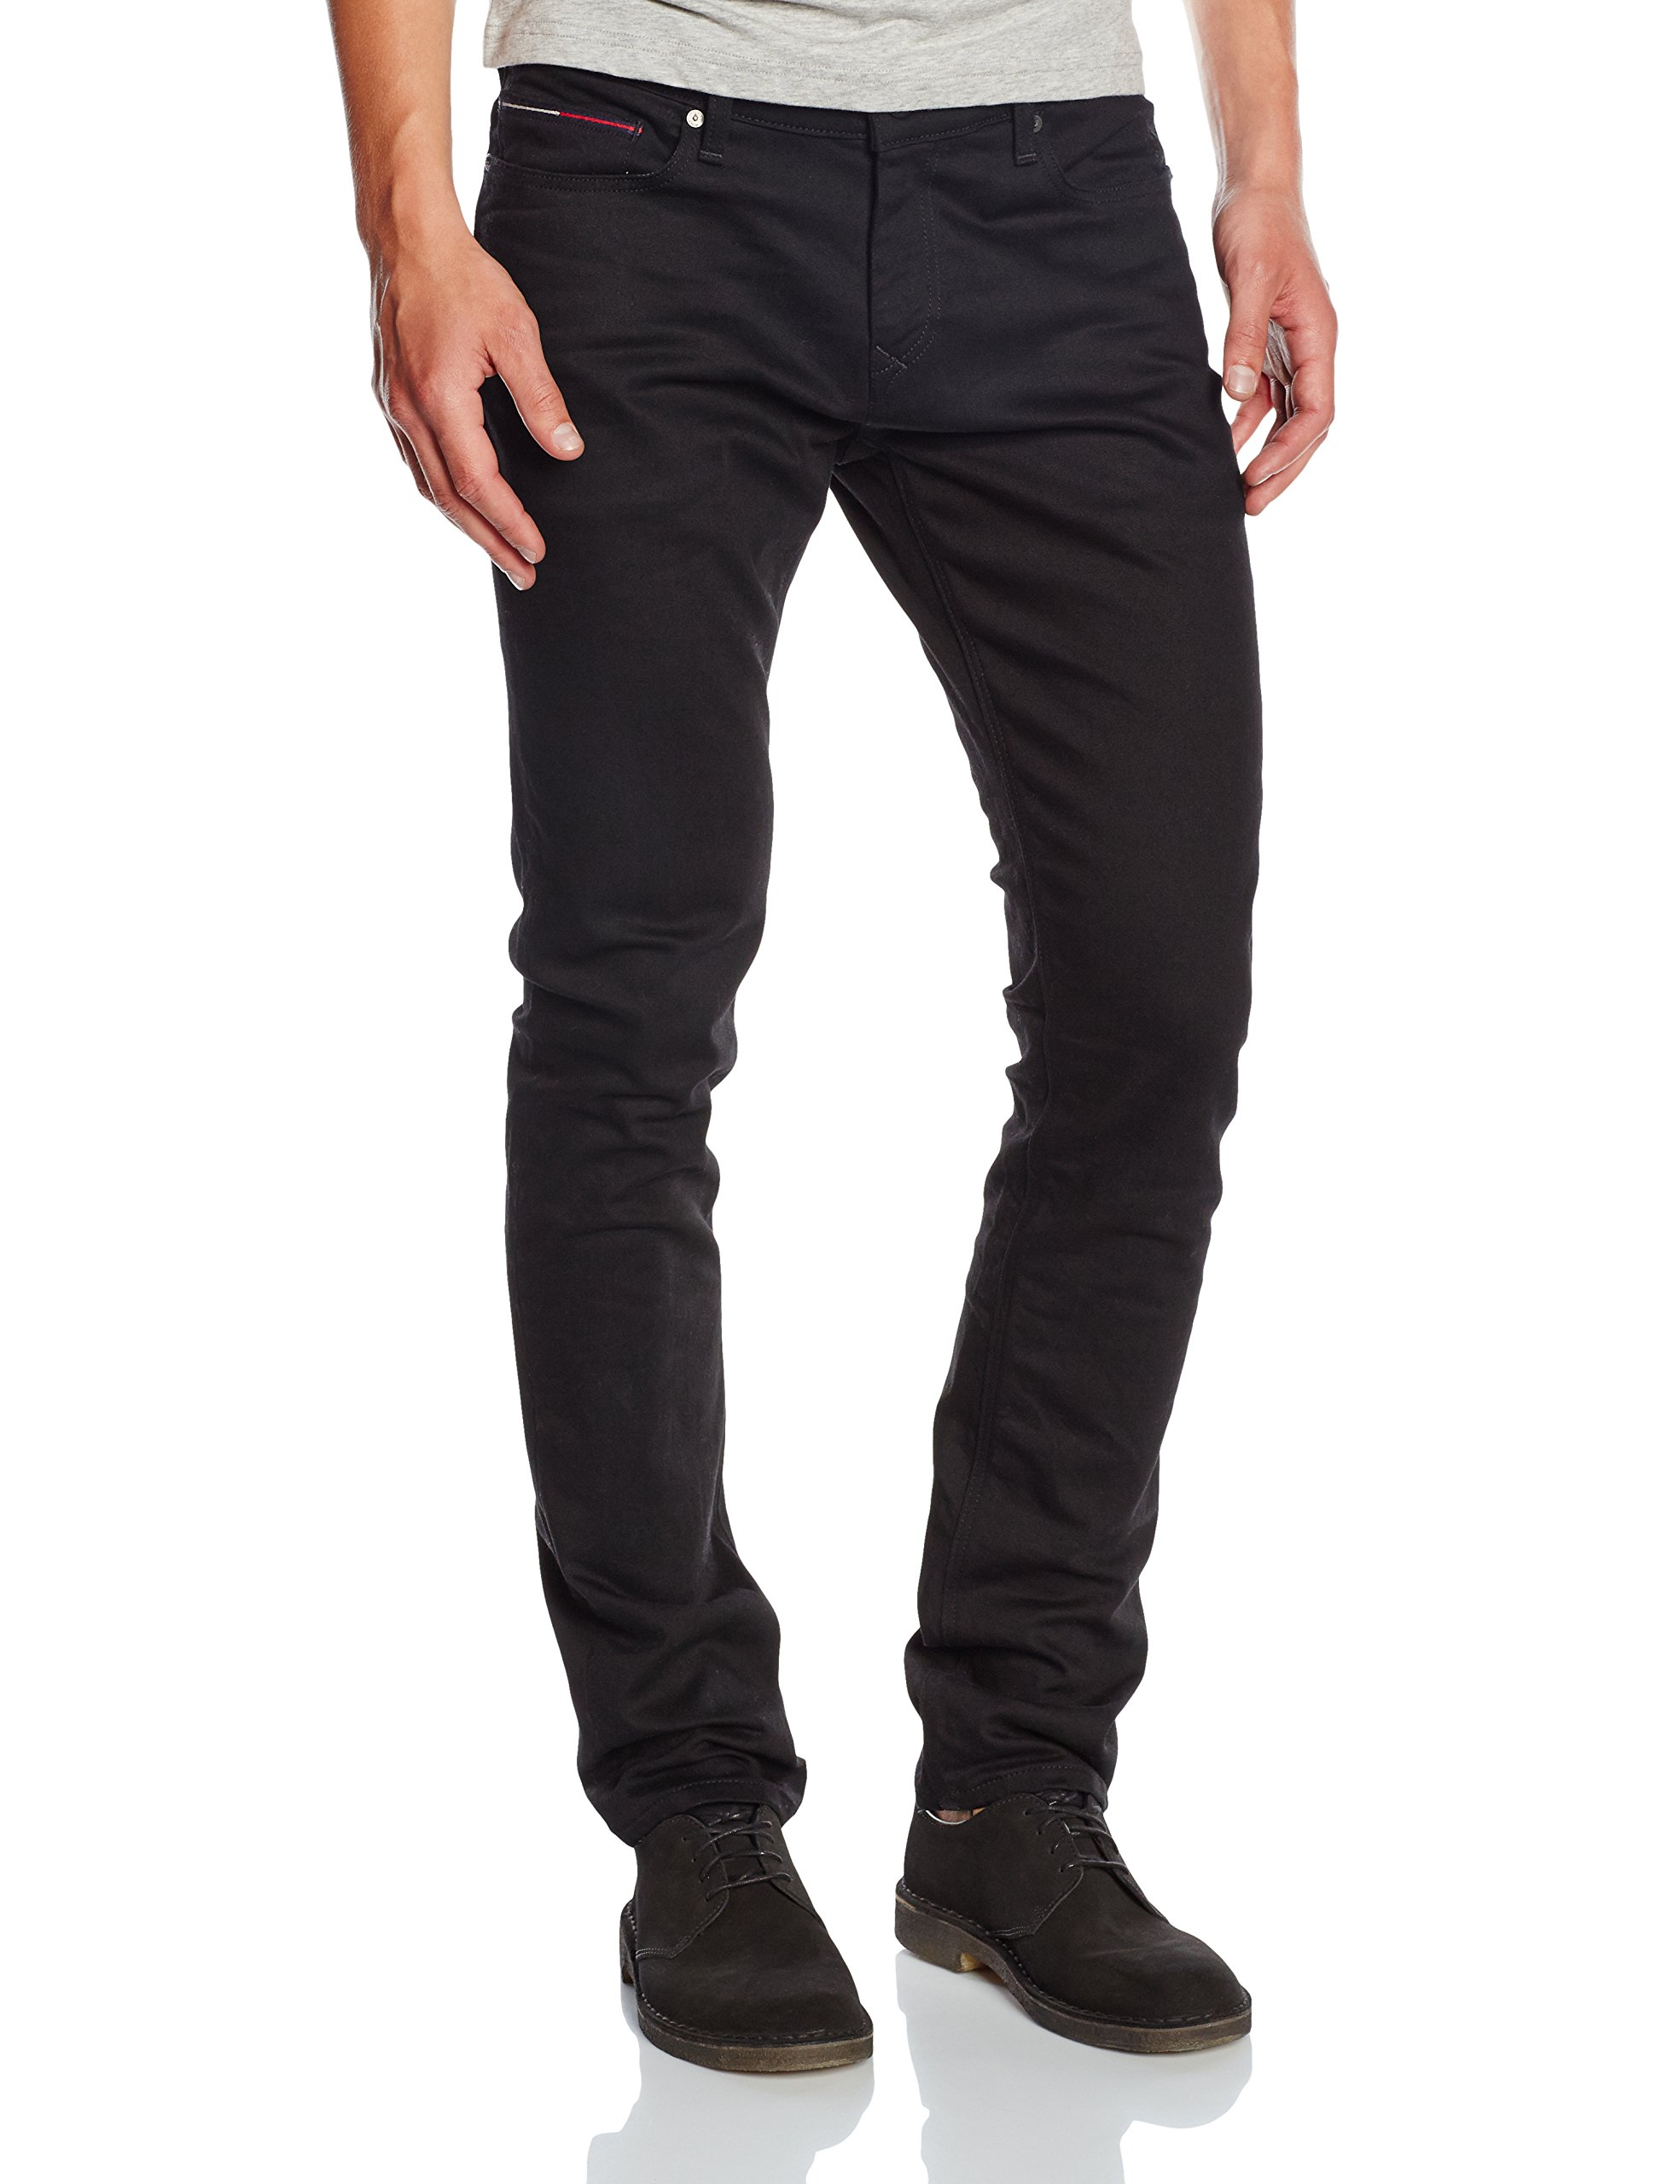 Sidney L Comfort33 34 Skinny Blco W Jeans JeansBlack Tommy Homme IY2E9bWDHe